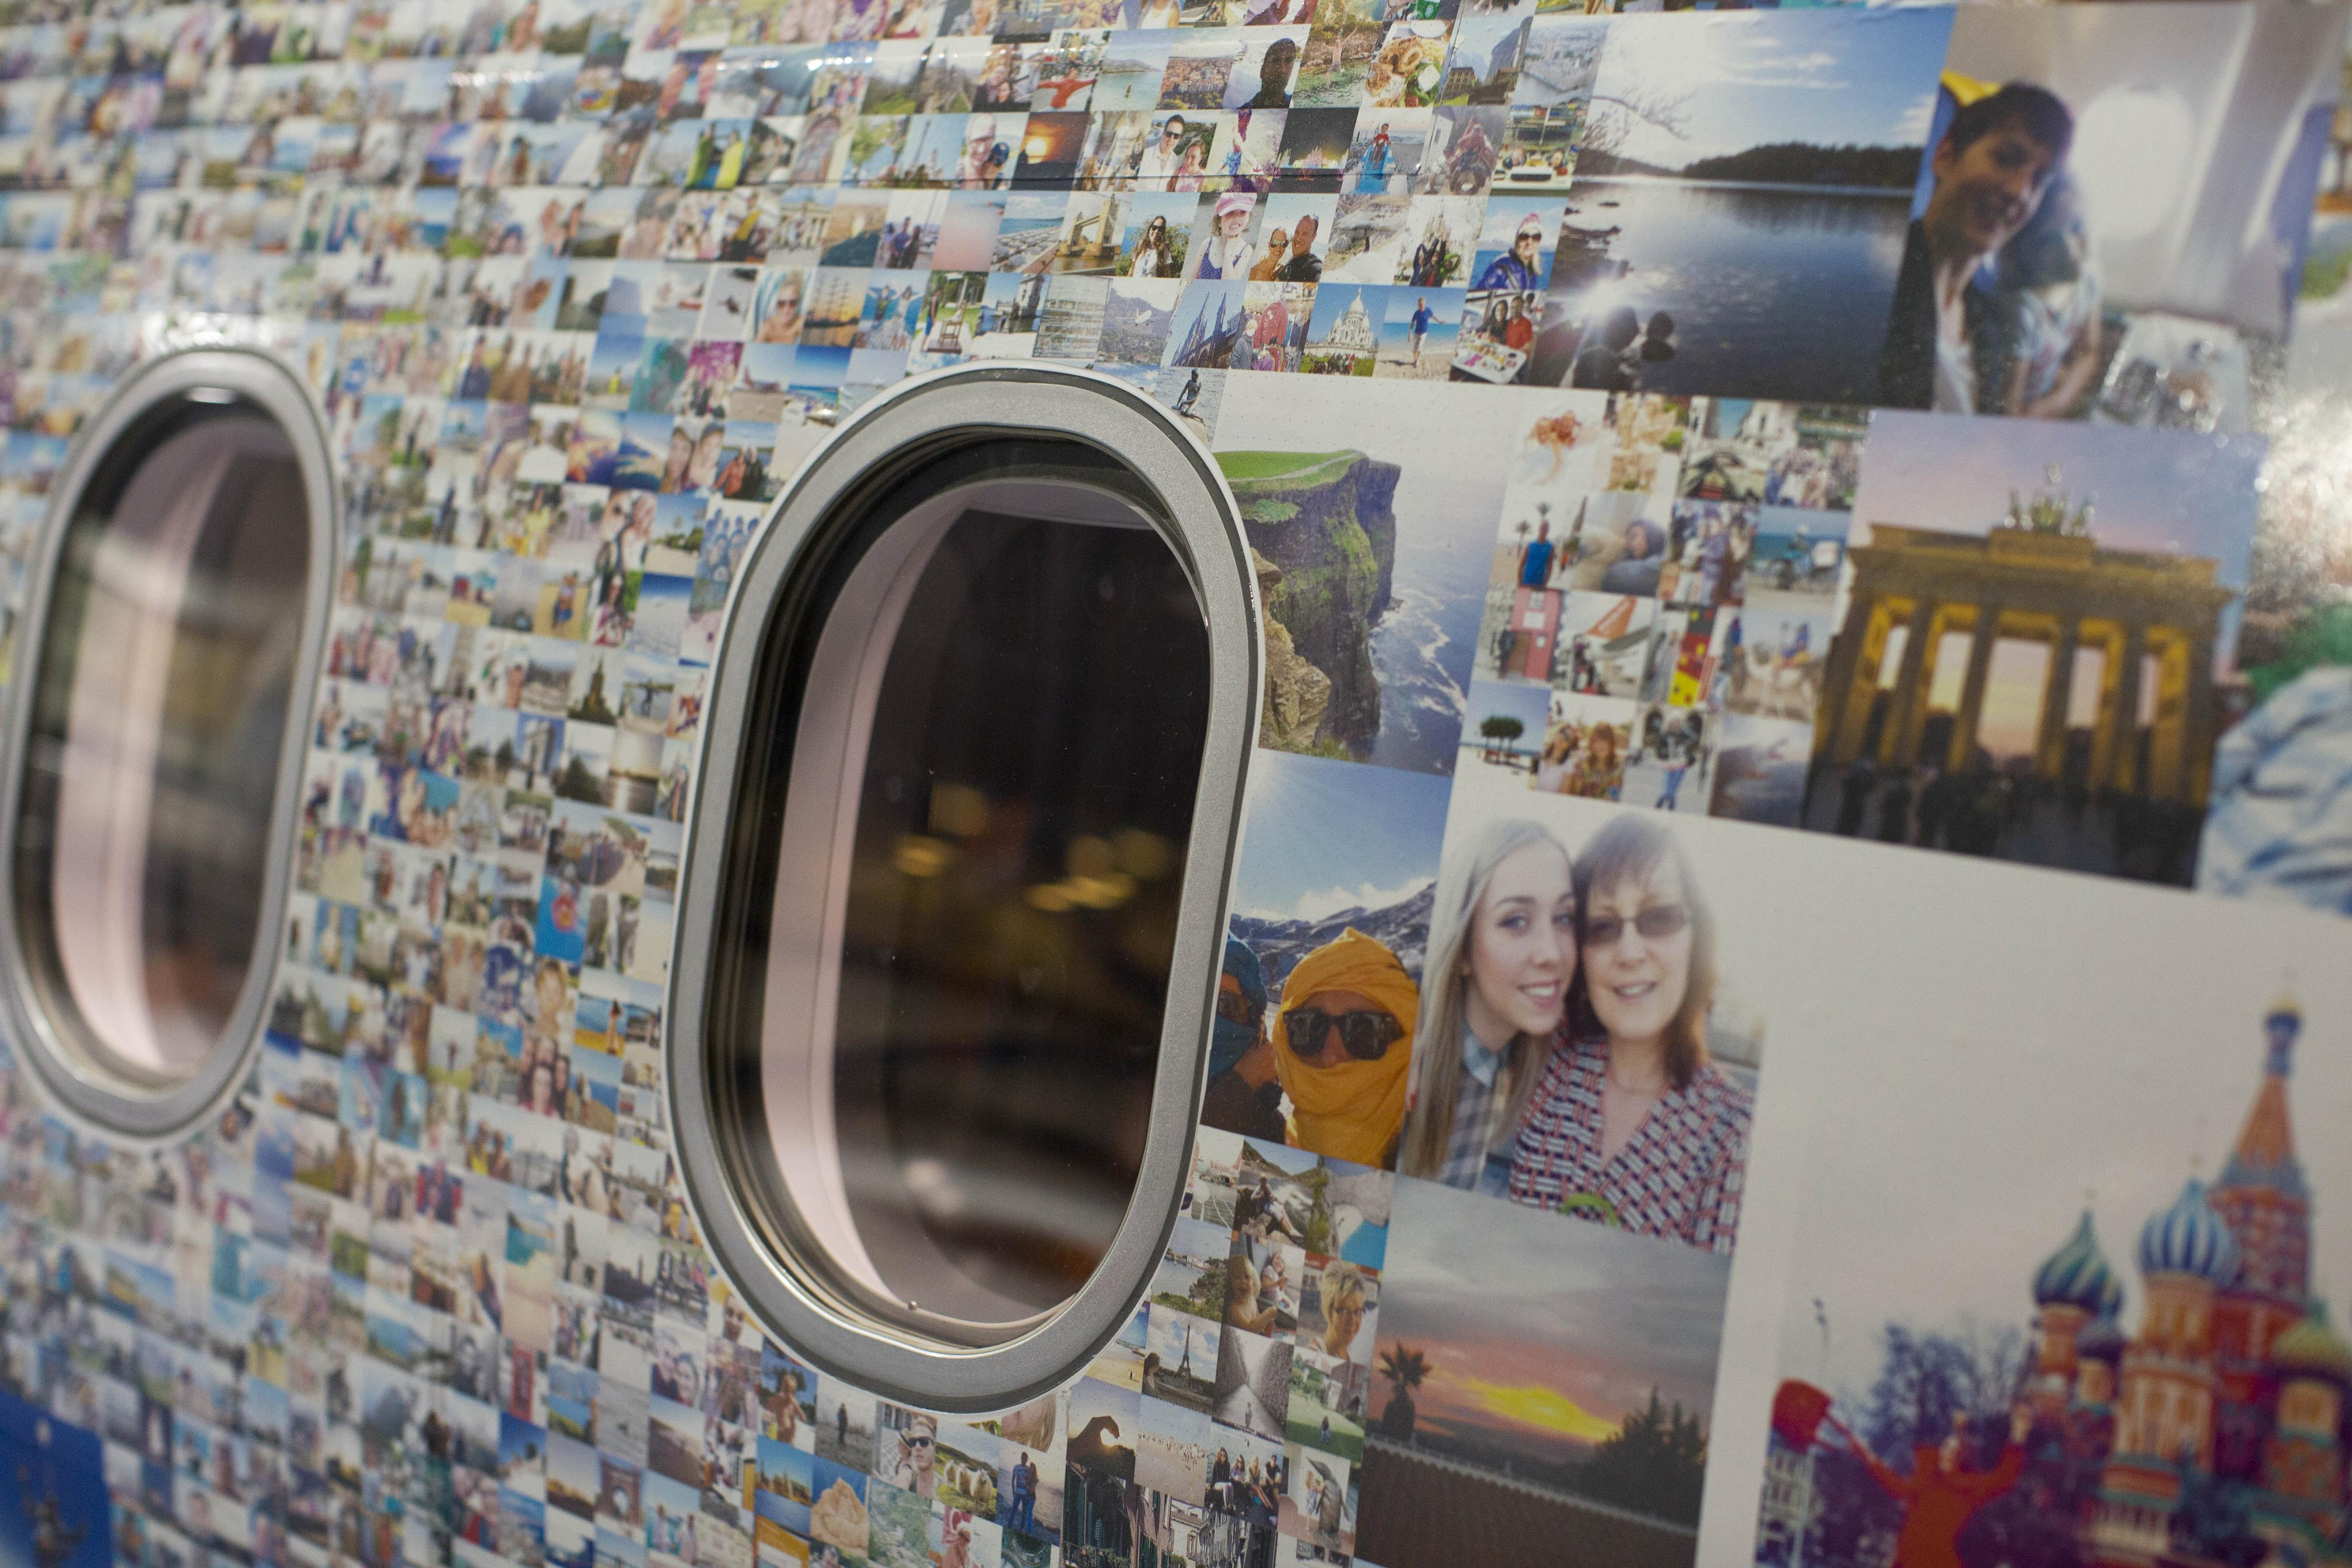 easyjet marks its 20th anniversary with special livery aircraft displaying more than 100,000 of its customers' holiday pictures